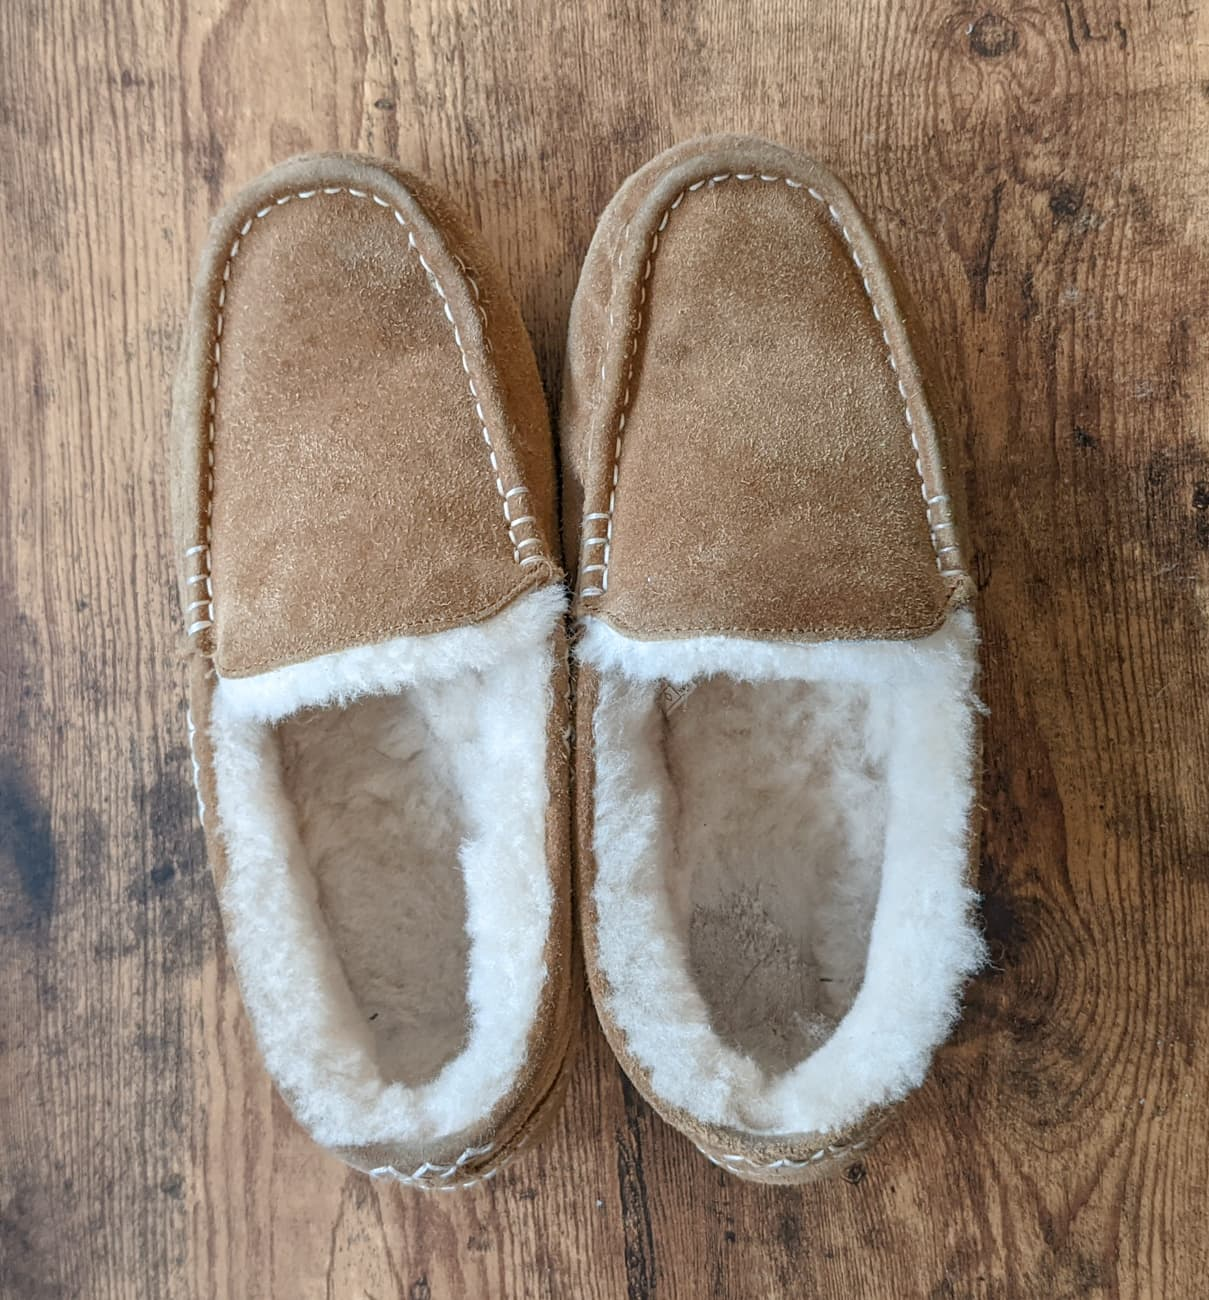 One step in cleaning sheepskin and suede slippers